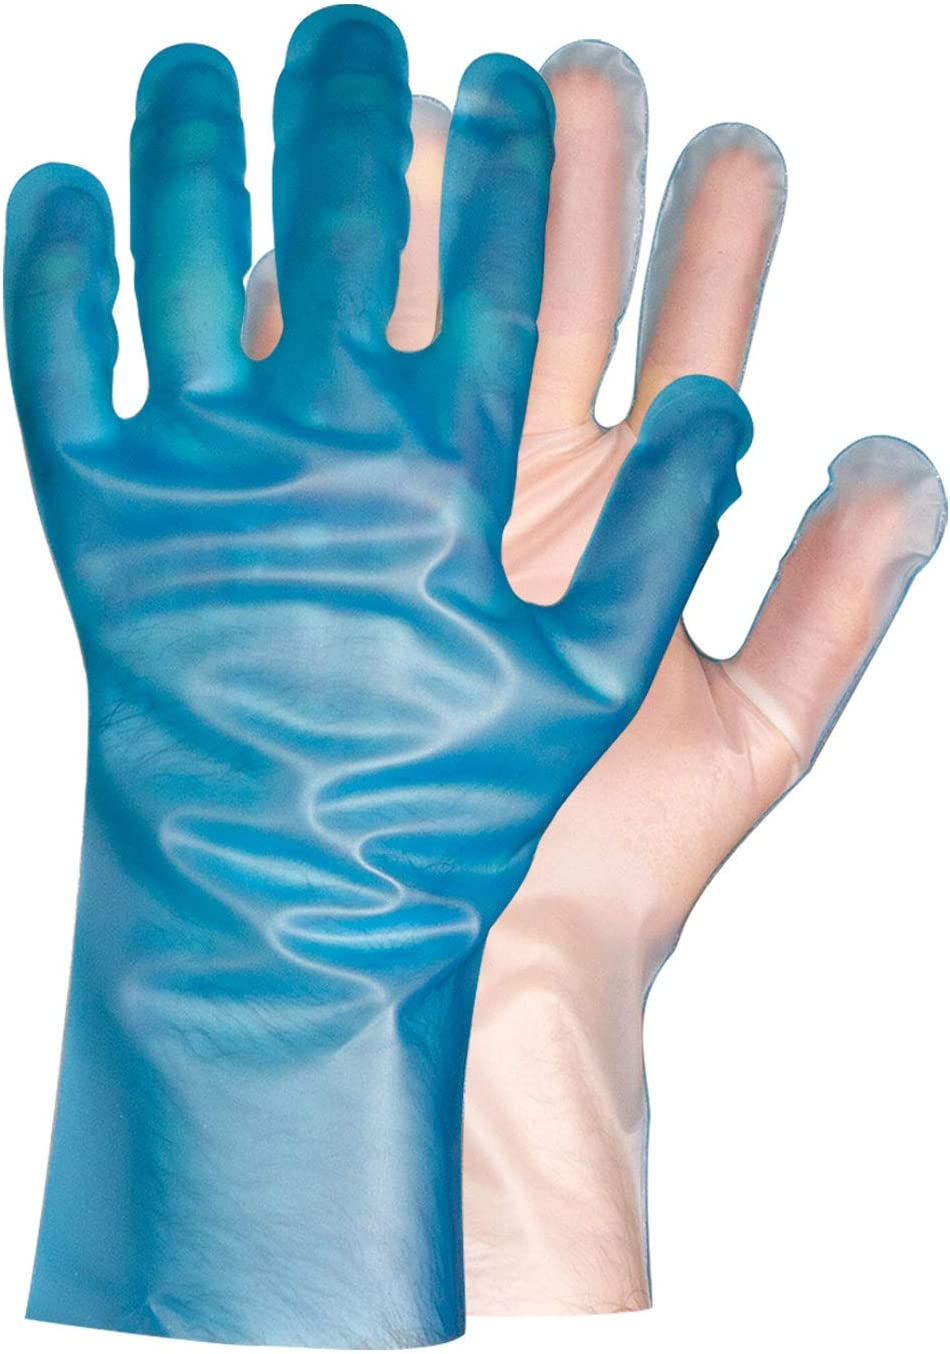 Super Strong Disposable BBQ Gloves by Protospheric. Food Prep Safety Cut /Tear Resistant Level 1, Abrasion Chemical Water Resistant. Free of: Nitrile Latex Vinyl Rubber Powder. 10 pair M 71JIzQNEeSL